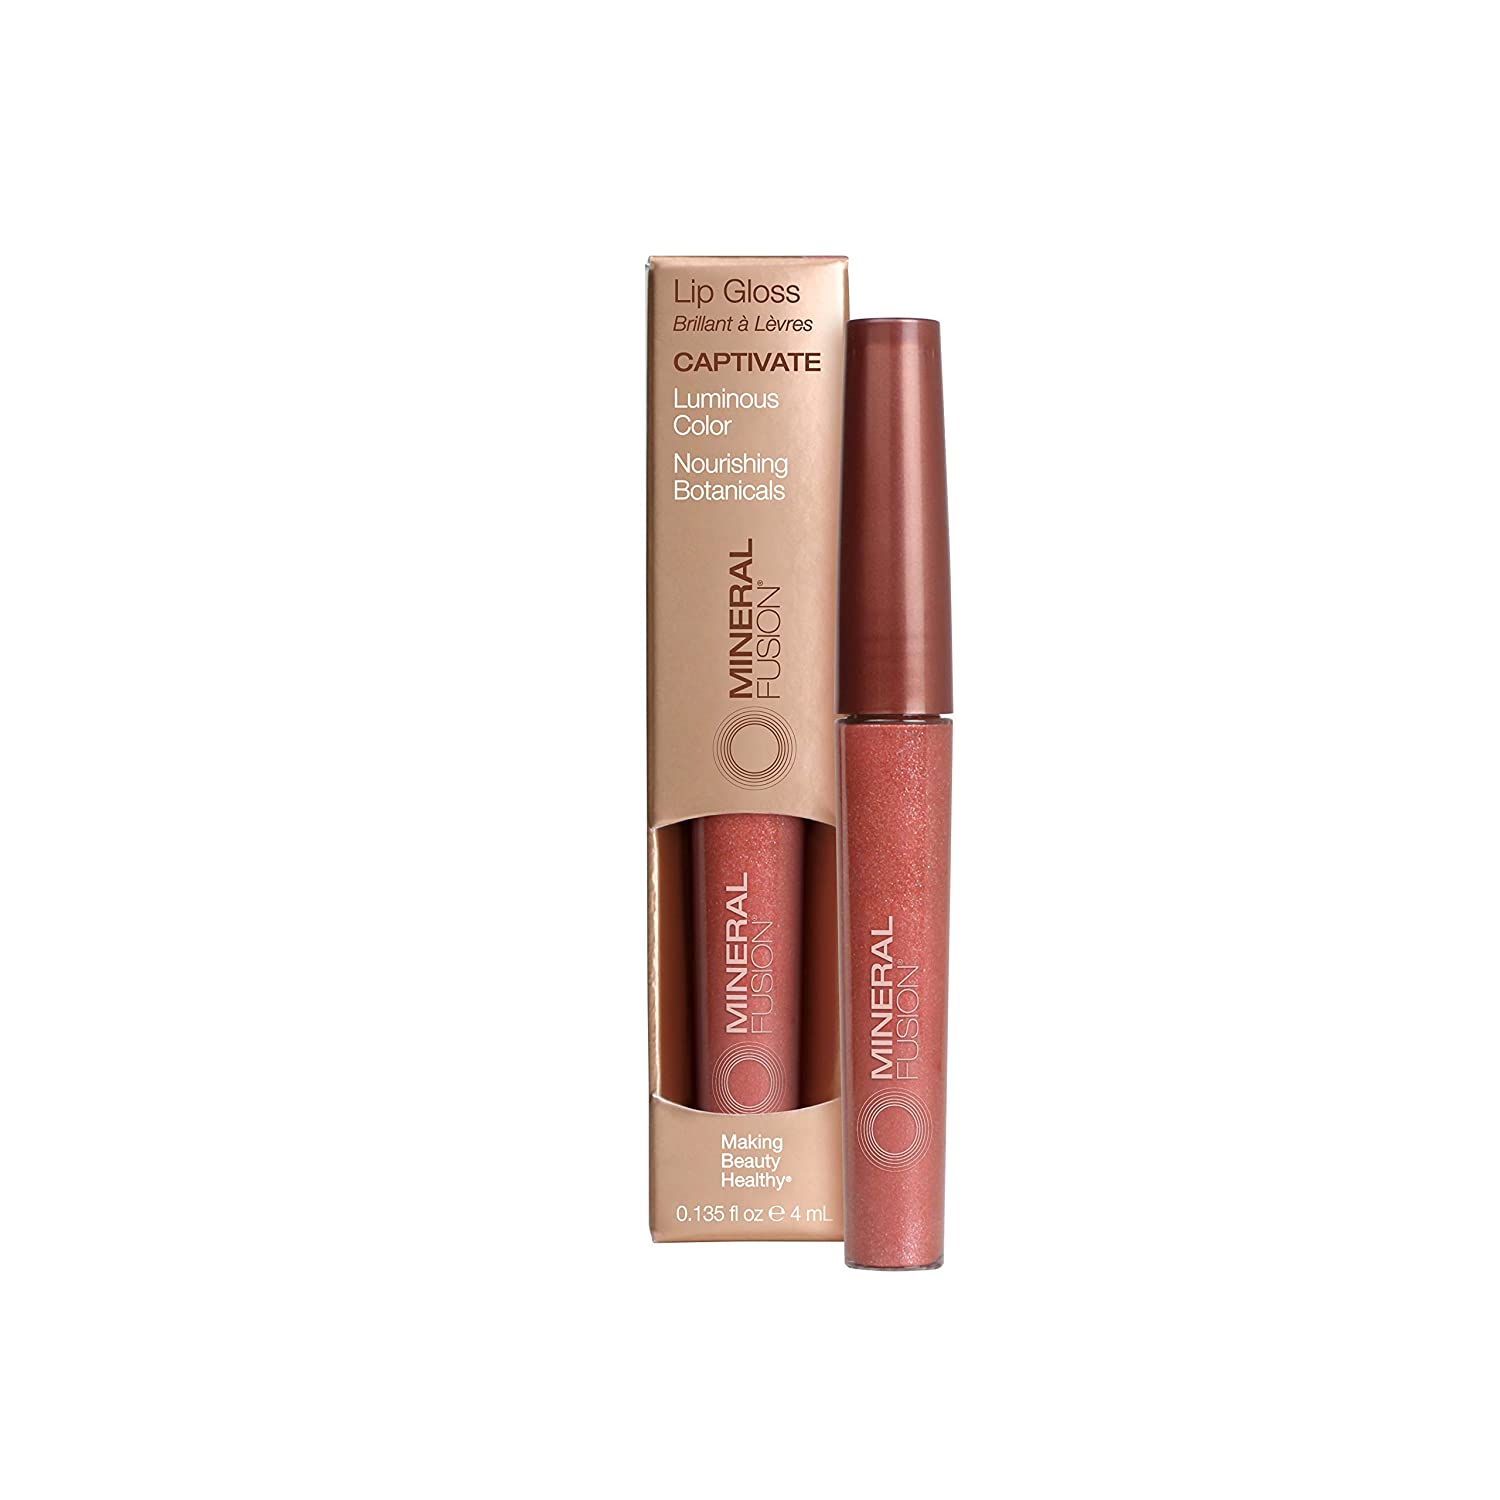 Mineral Raleigh Mall Fusion Lip trust Gloss oz Captivate 0.135